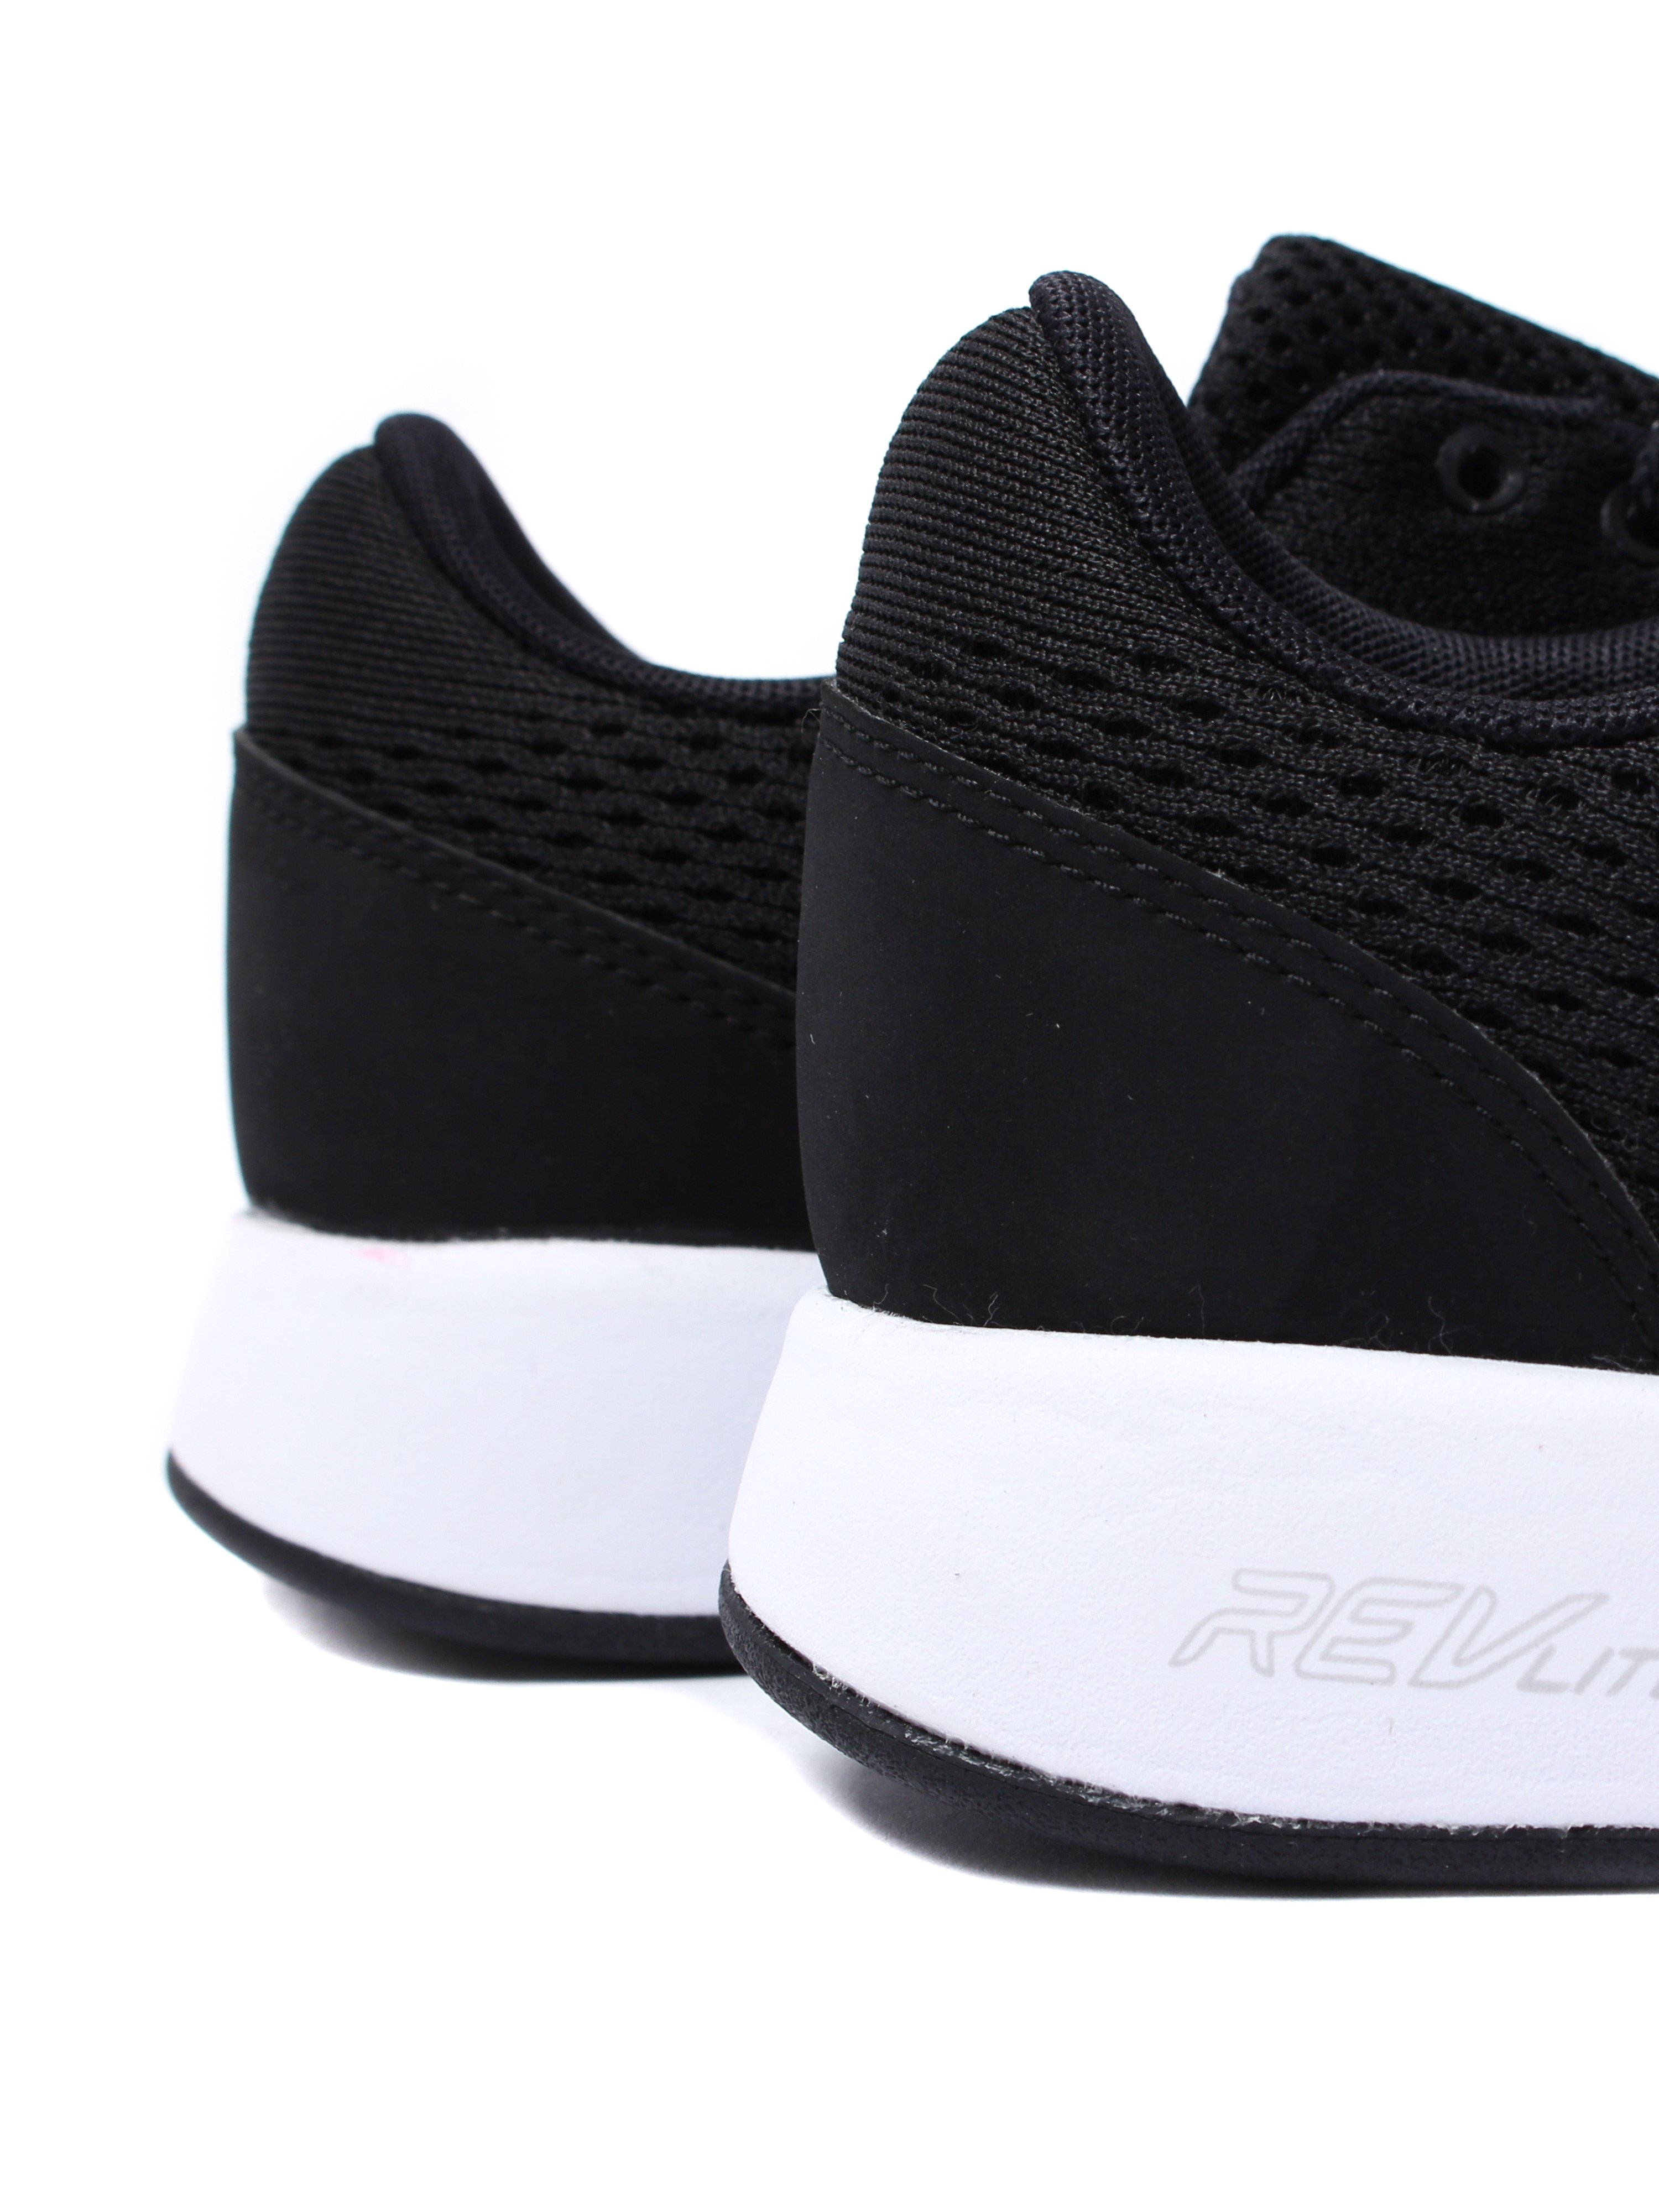 New Balance Women's 420 Engineered Trainers - Black & White